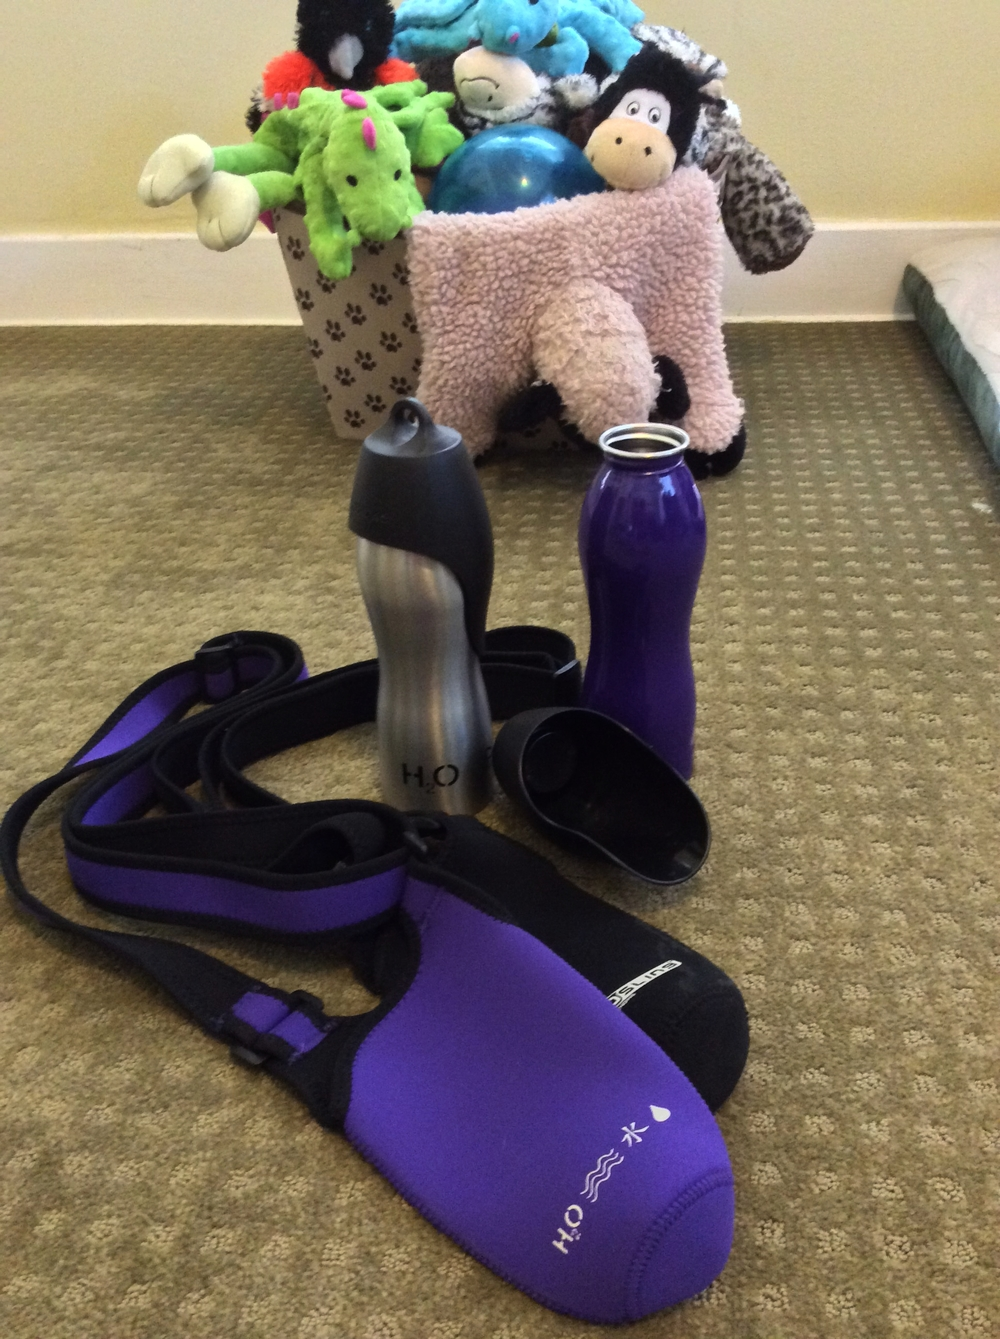 H20K9 Dog Water Bottles with NEOSLING holders